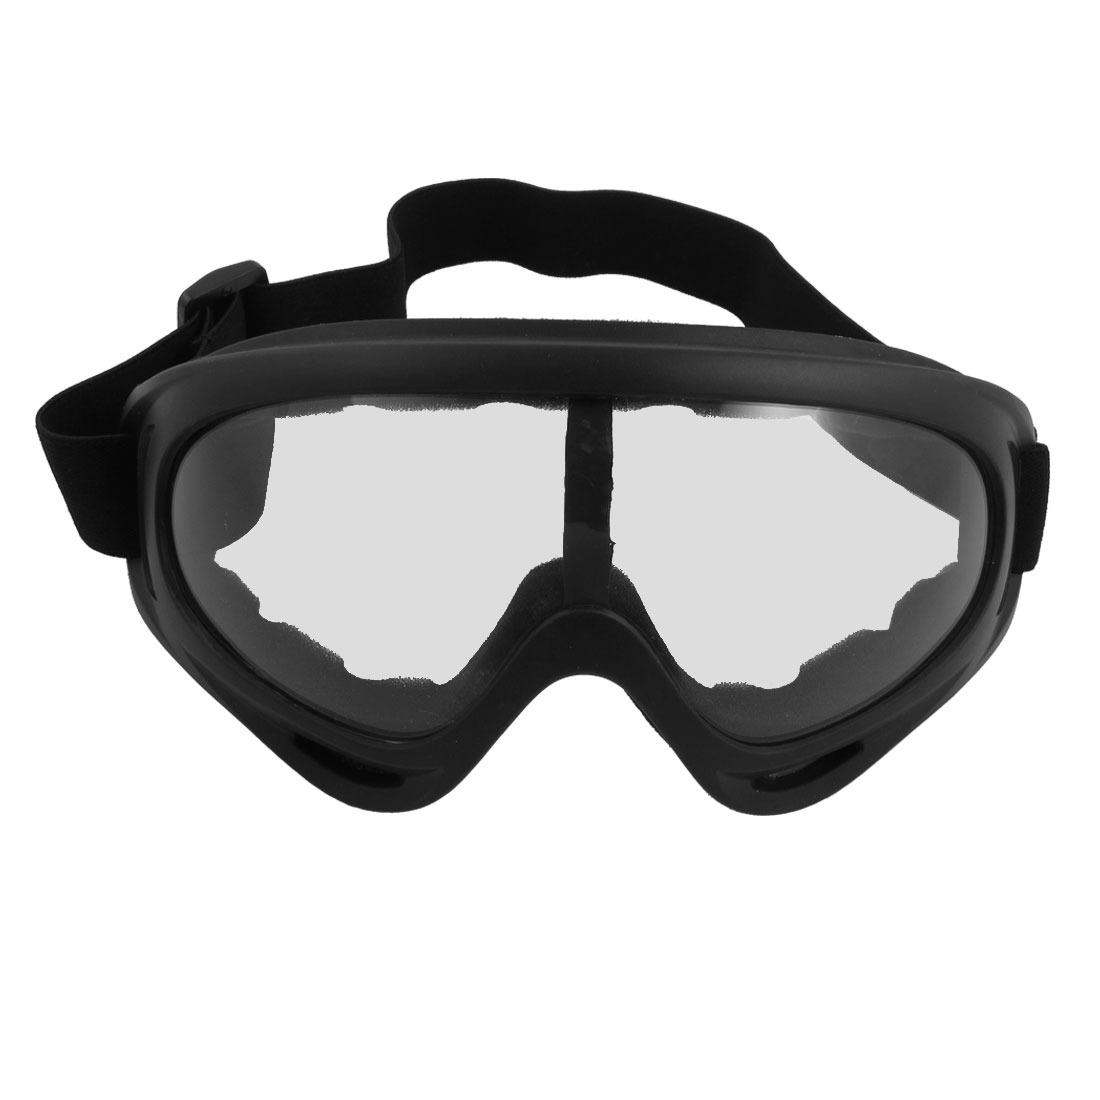 Men Goggles Headband Safety Glasses Wind Dust Motorcycle Protection Black Clear